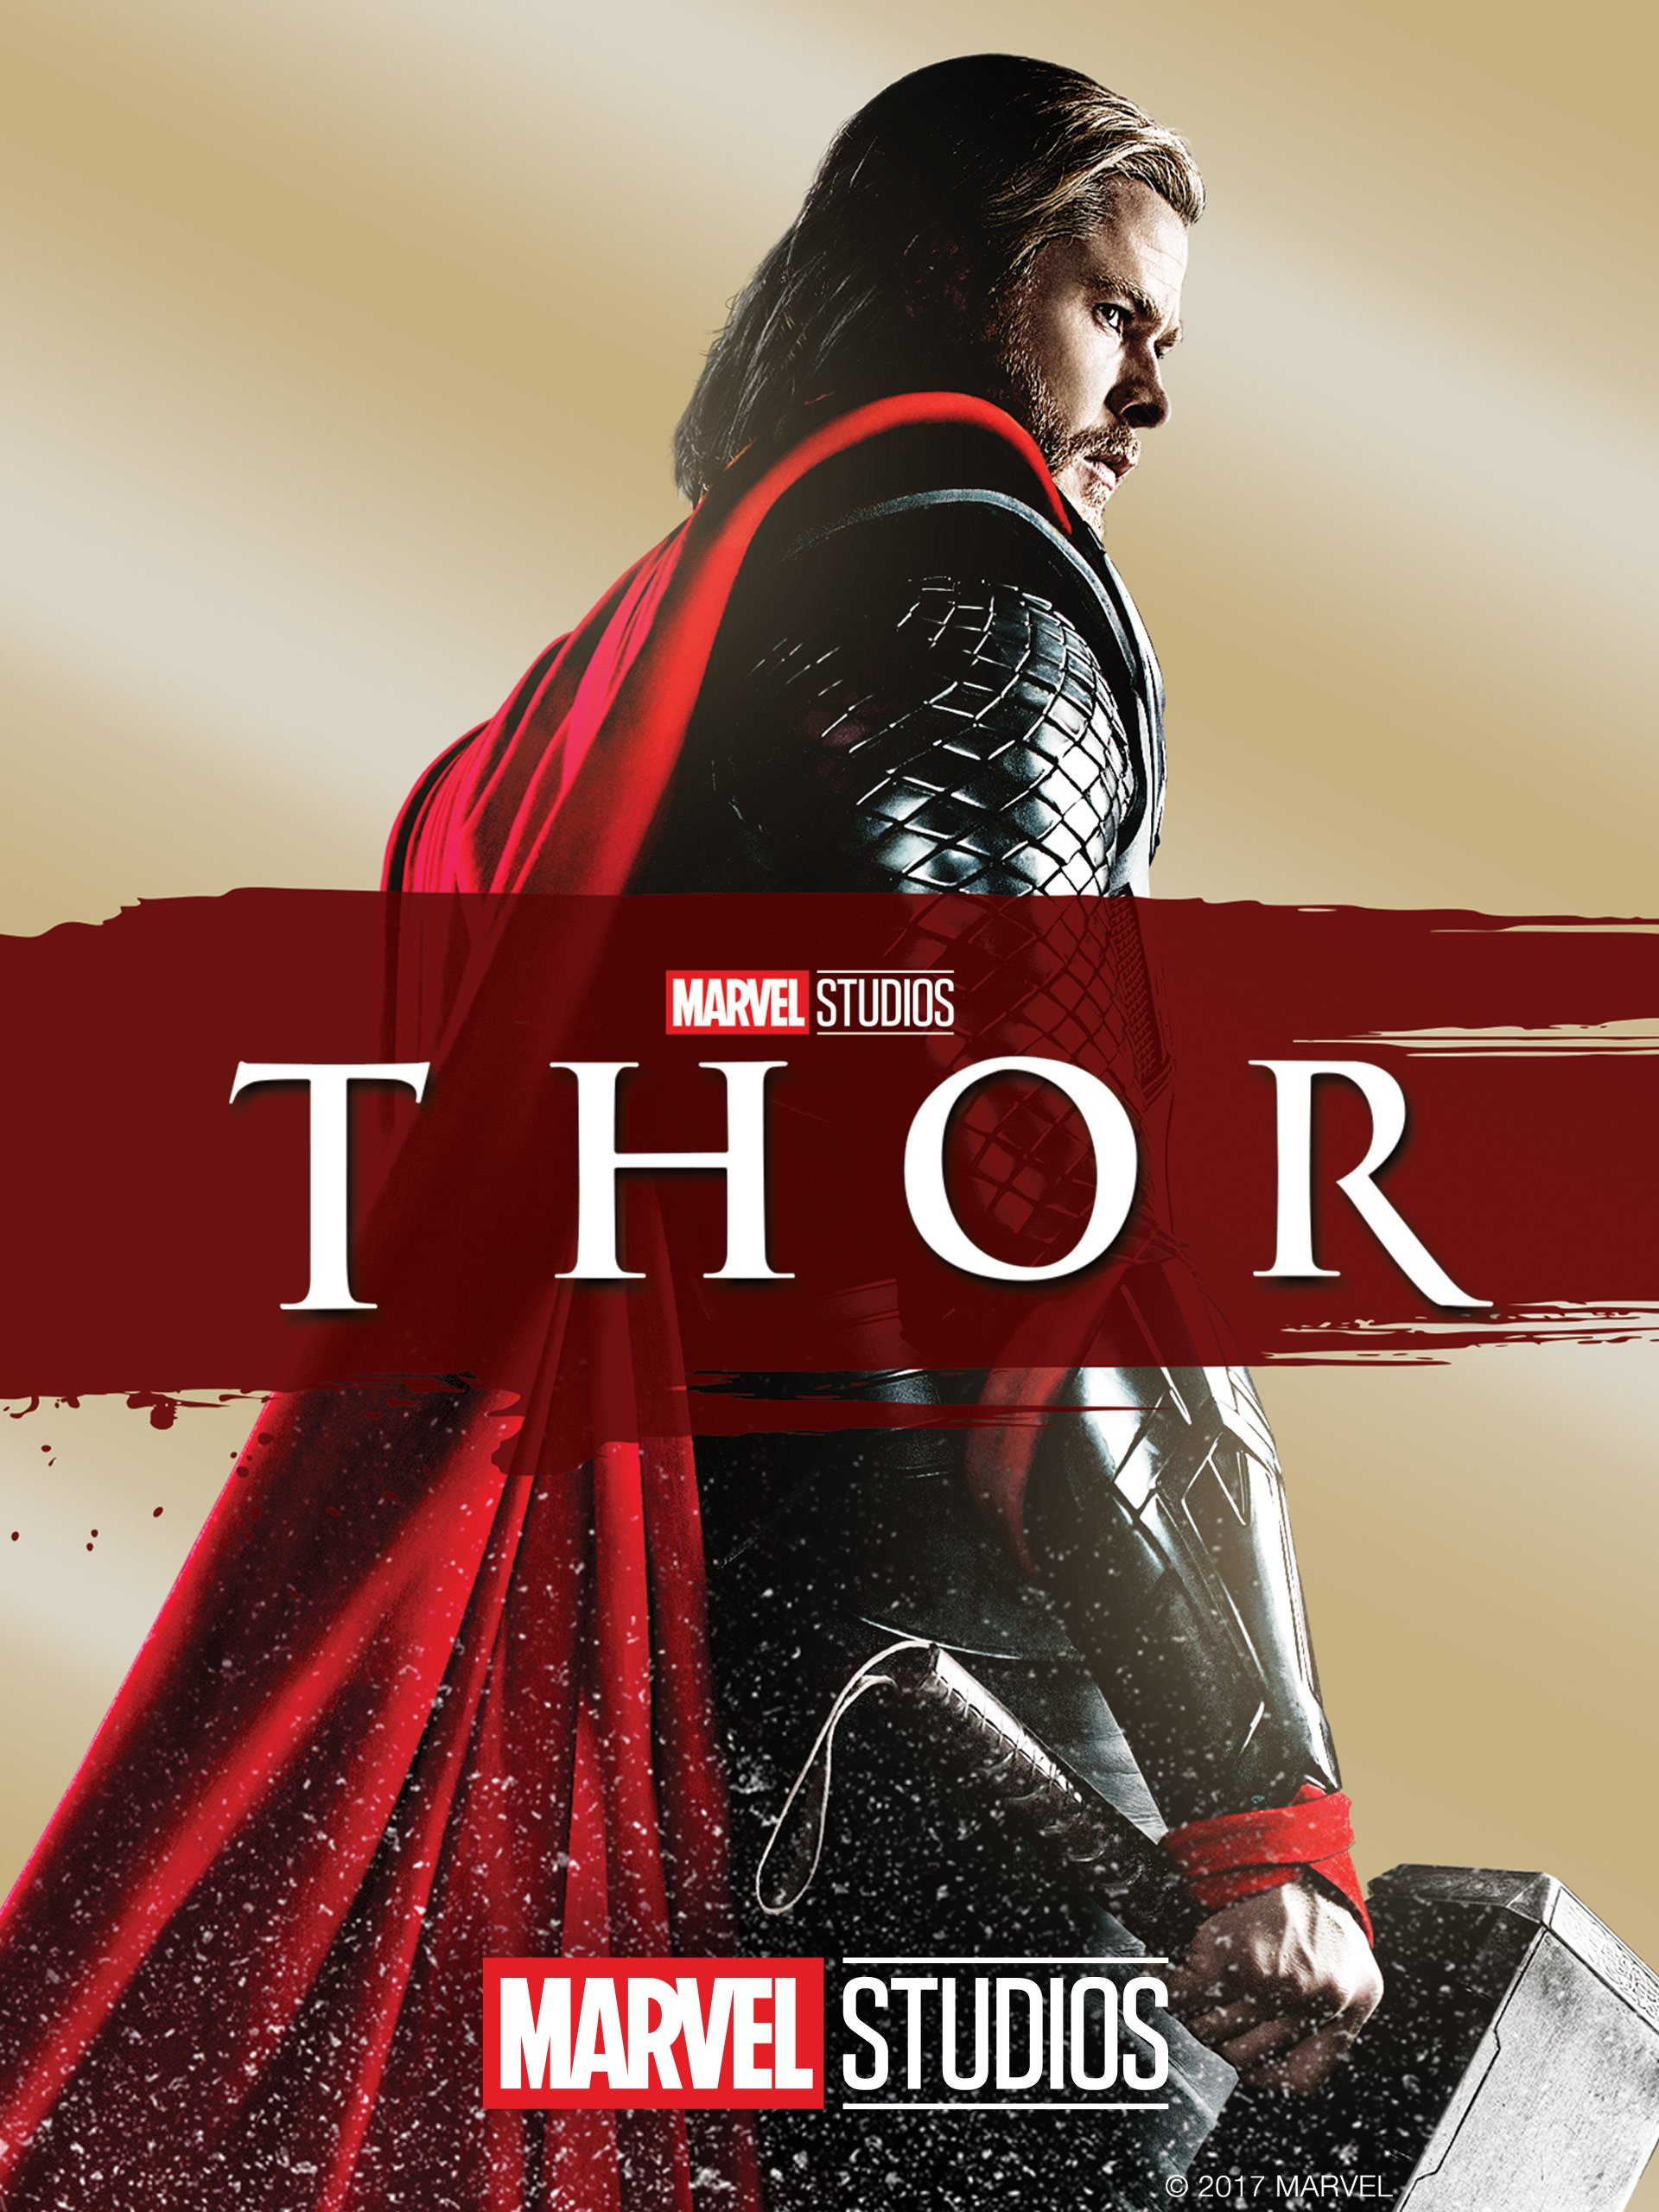 Thor by